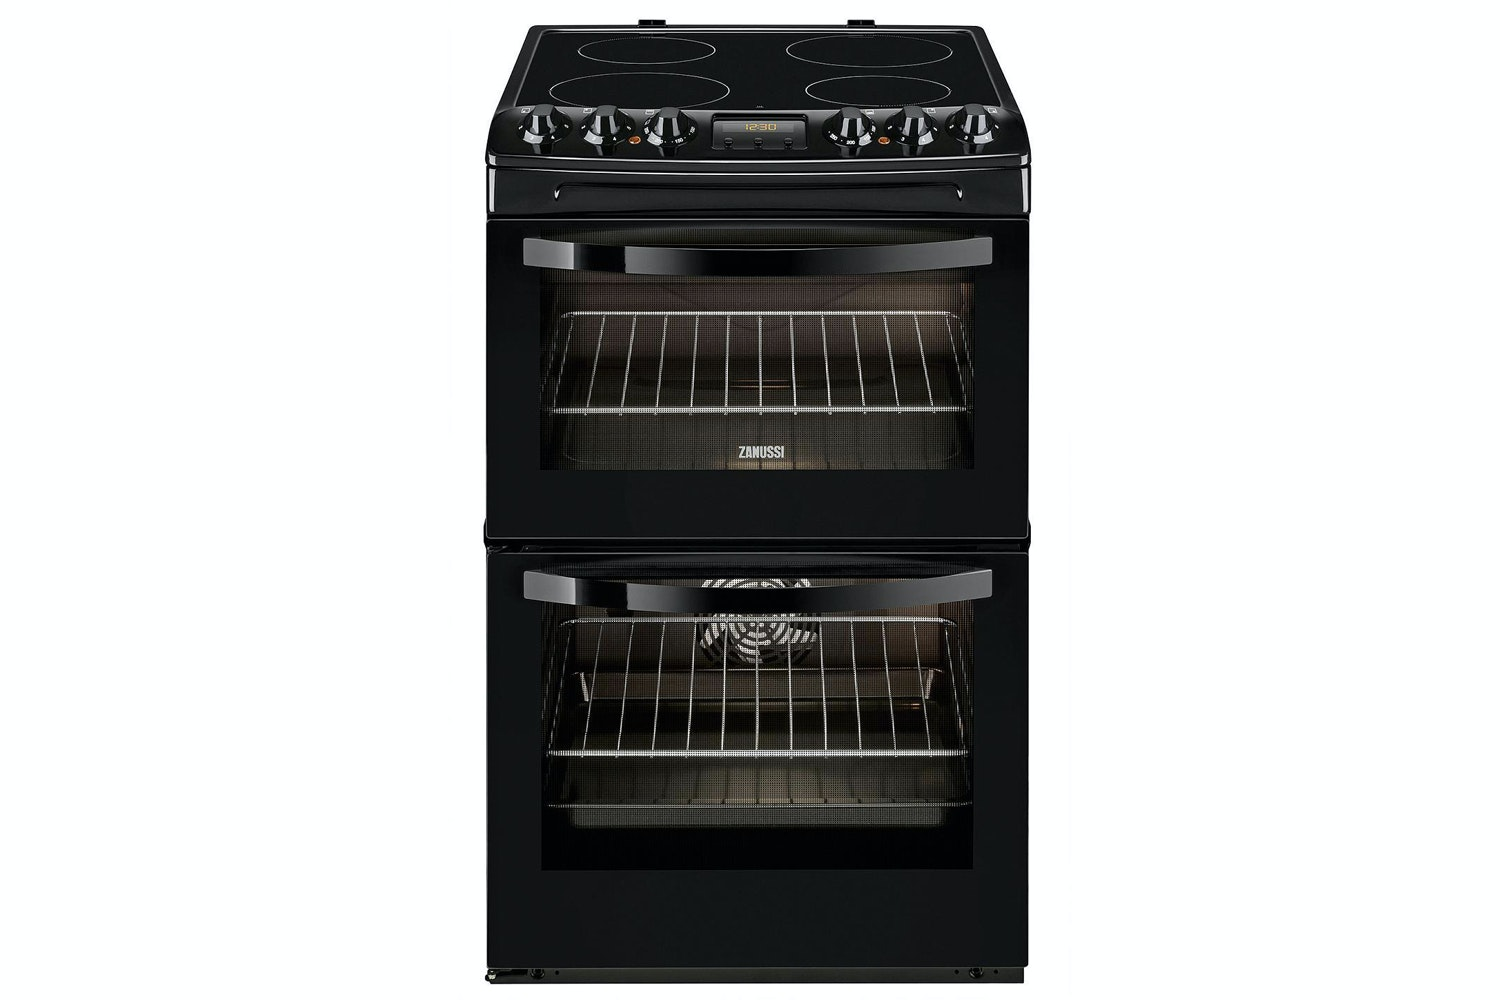 Zanussi 55cm Electric Cooker | ZCV48300BA | Black